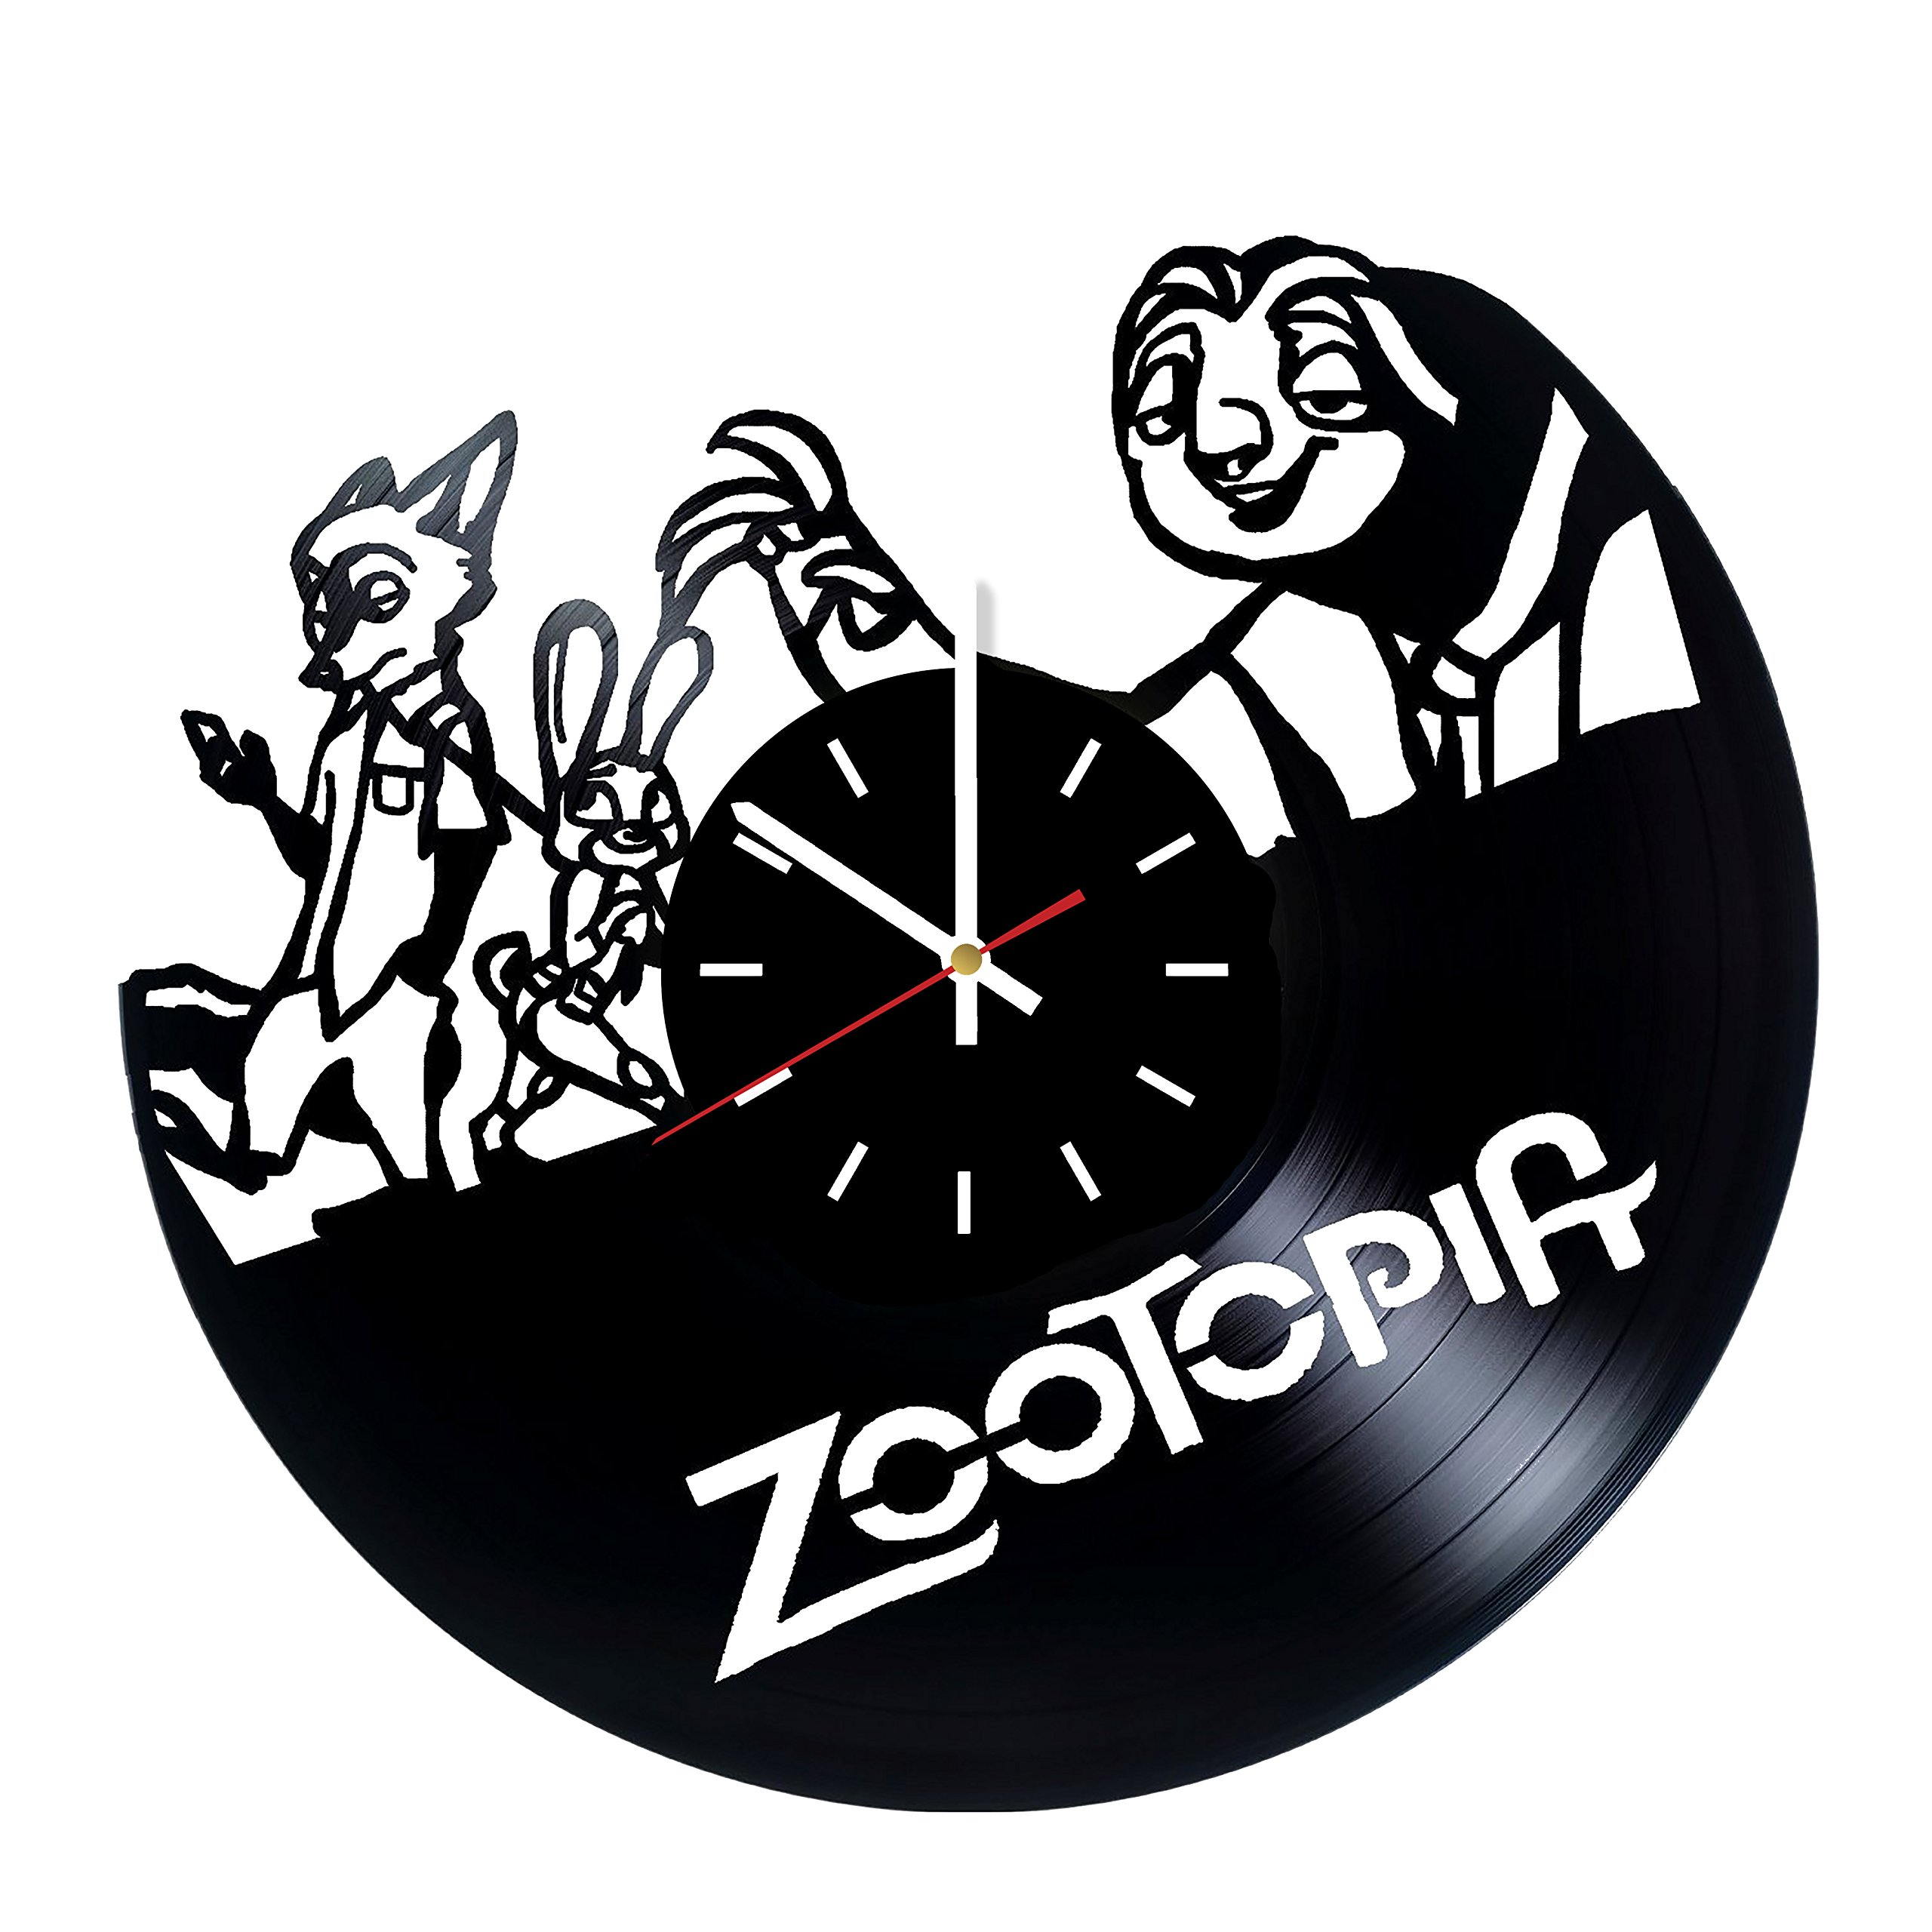 Everyday Arts Zootopia Walt Disney Animation Studios Design Vinyl Record Wall Clock - Get Unique Bedroom or Garage Wall Decor - Gift Ideas for Friends, Brother - Darth Vader Unique Modern Art